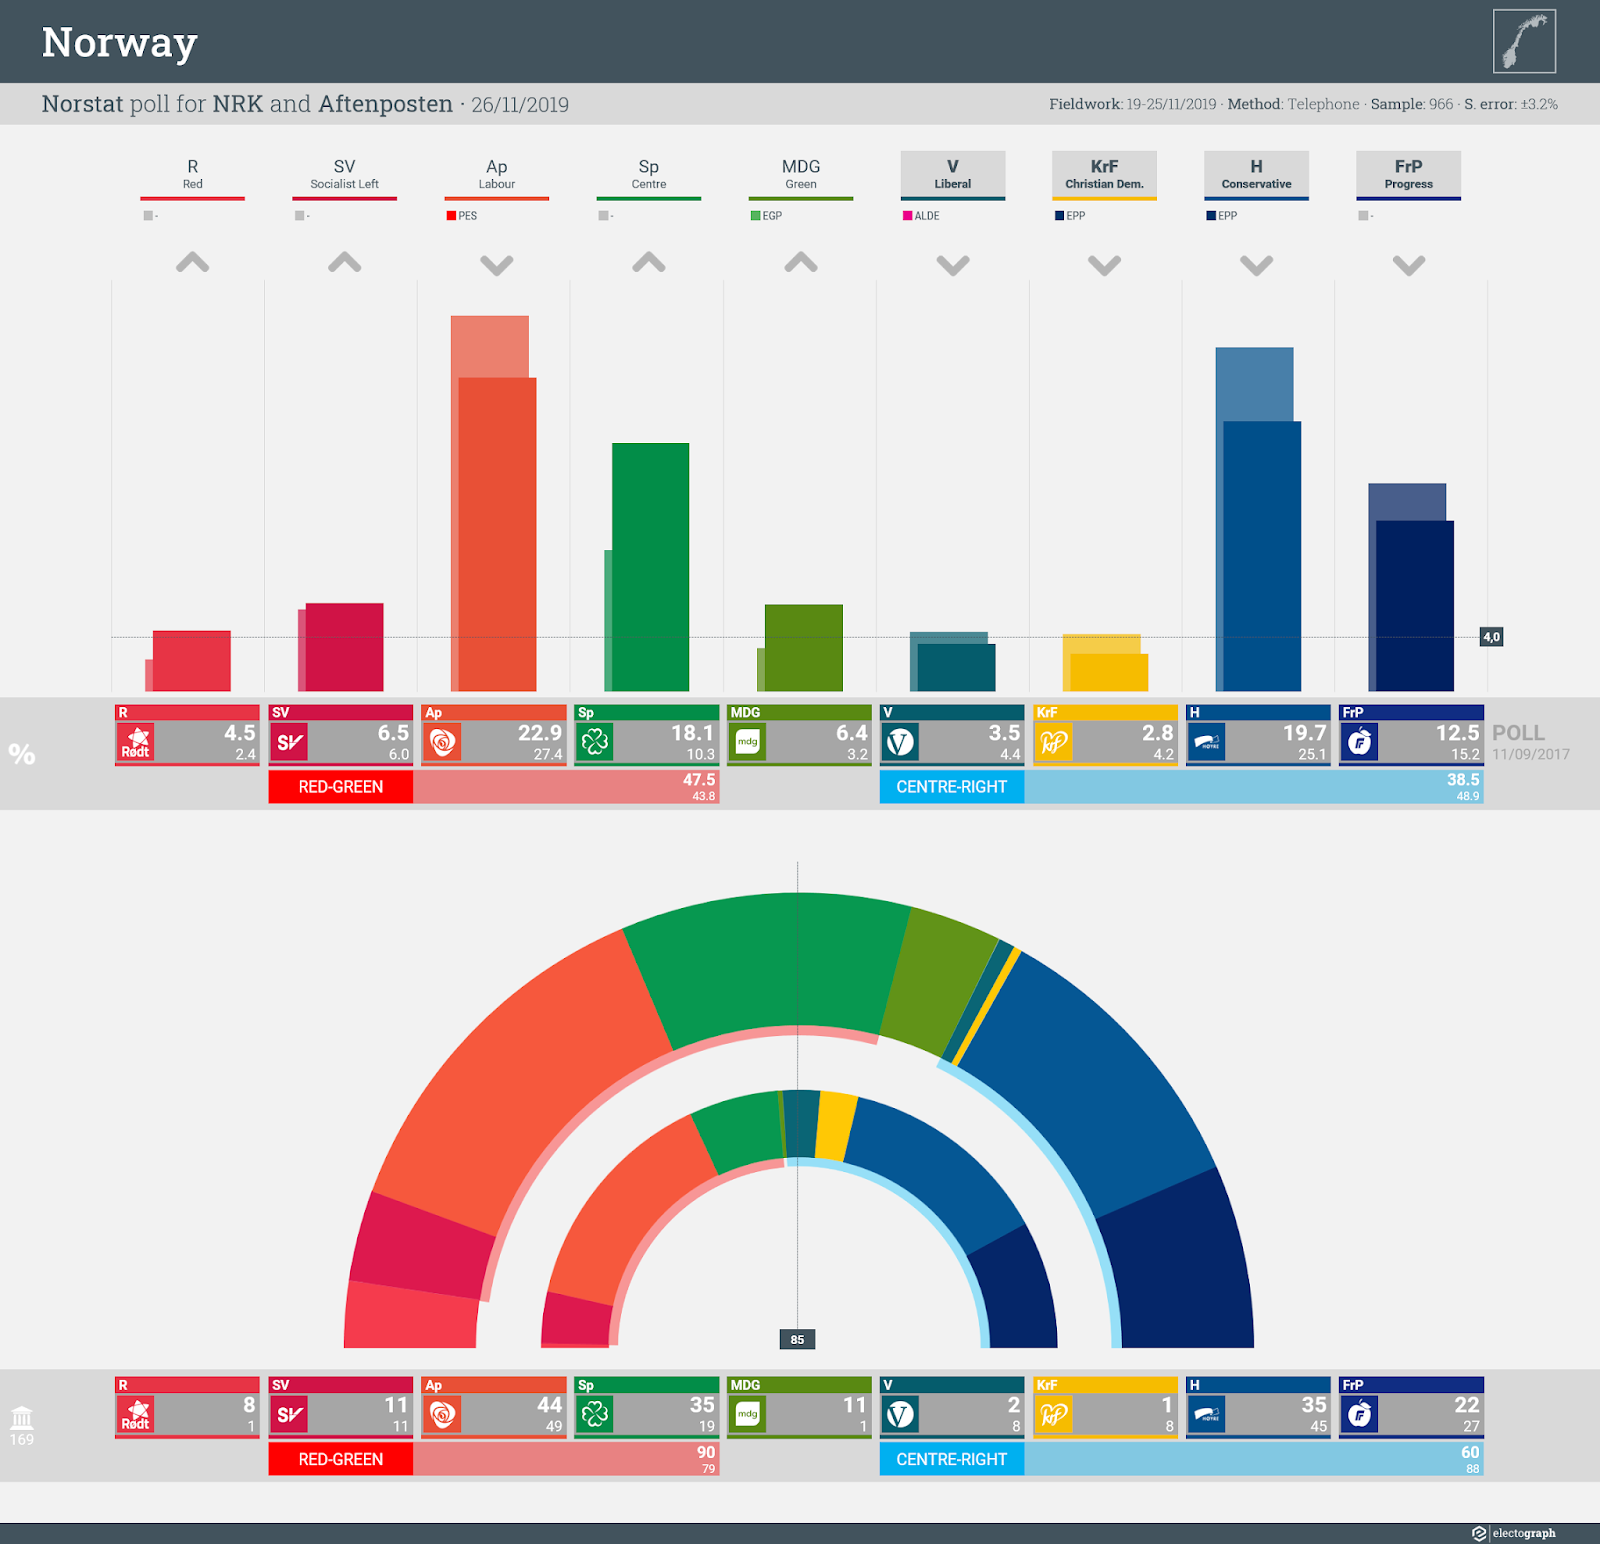 NORWAY: Norstat poll chart for NRK and Aftenposten, 26 November 2019